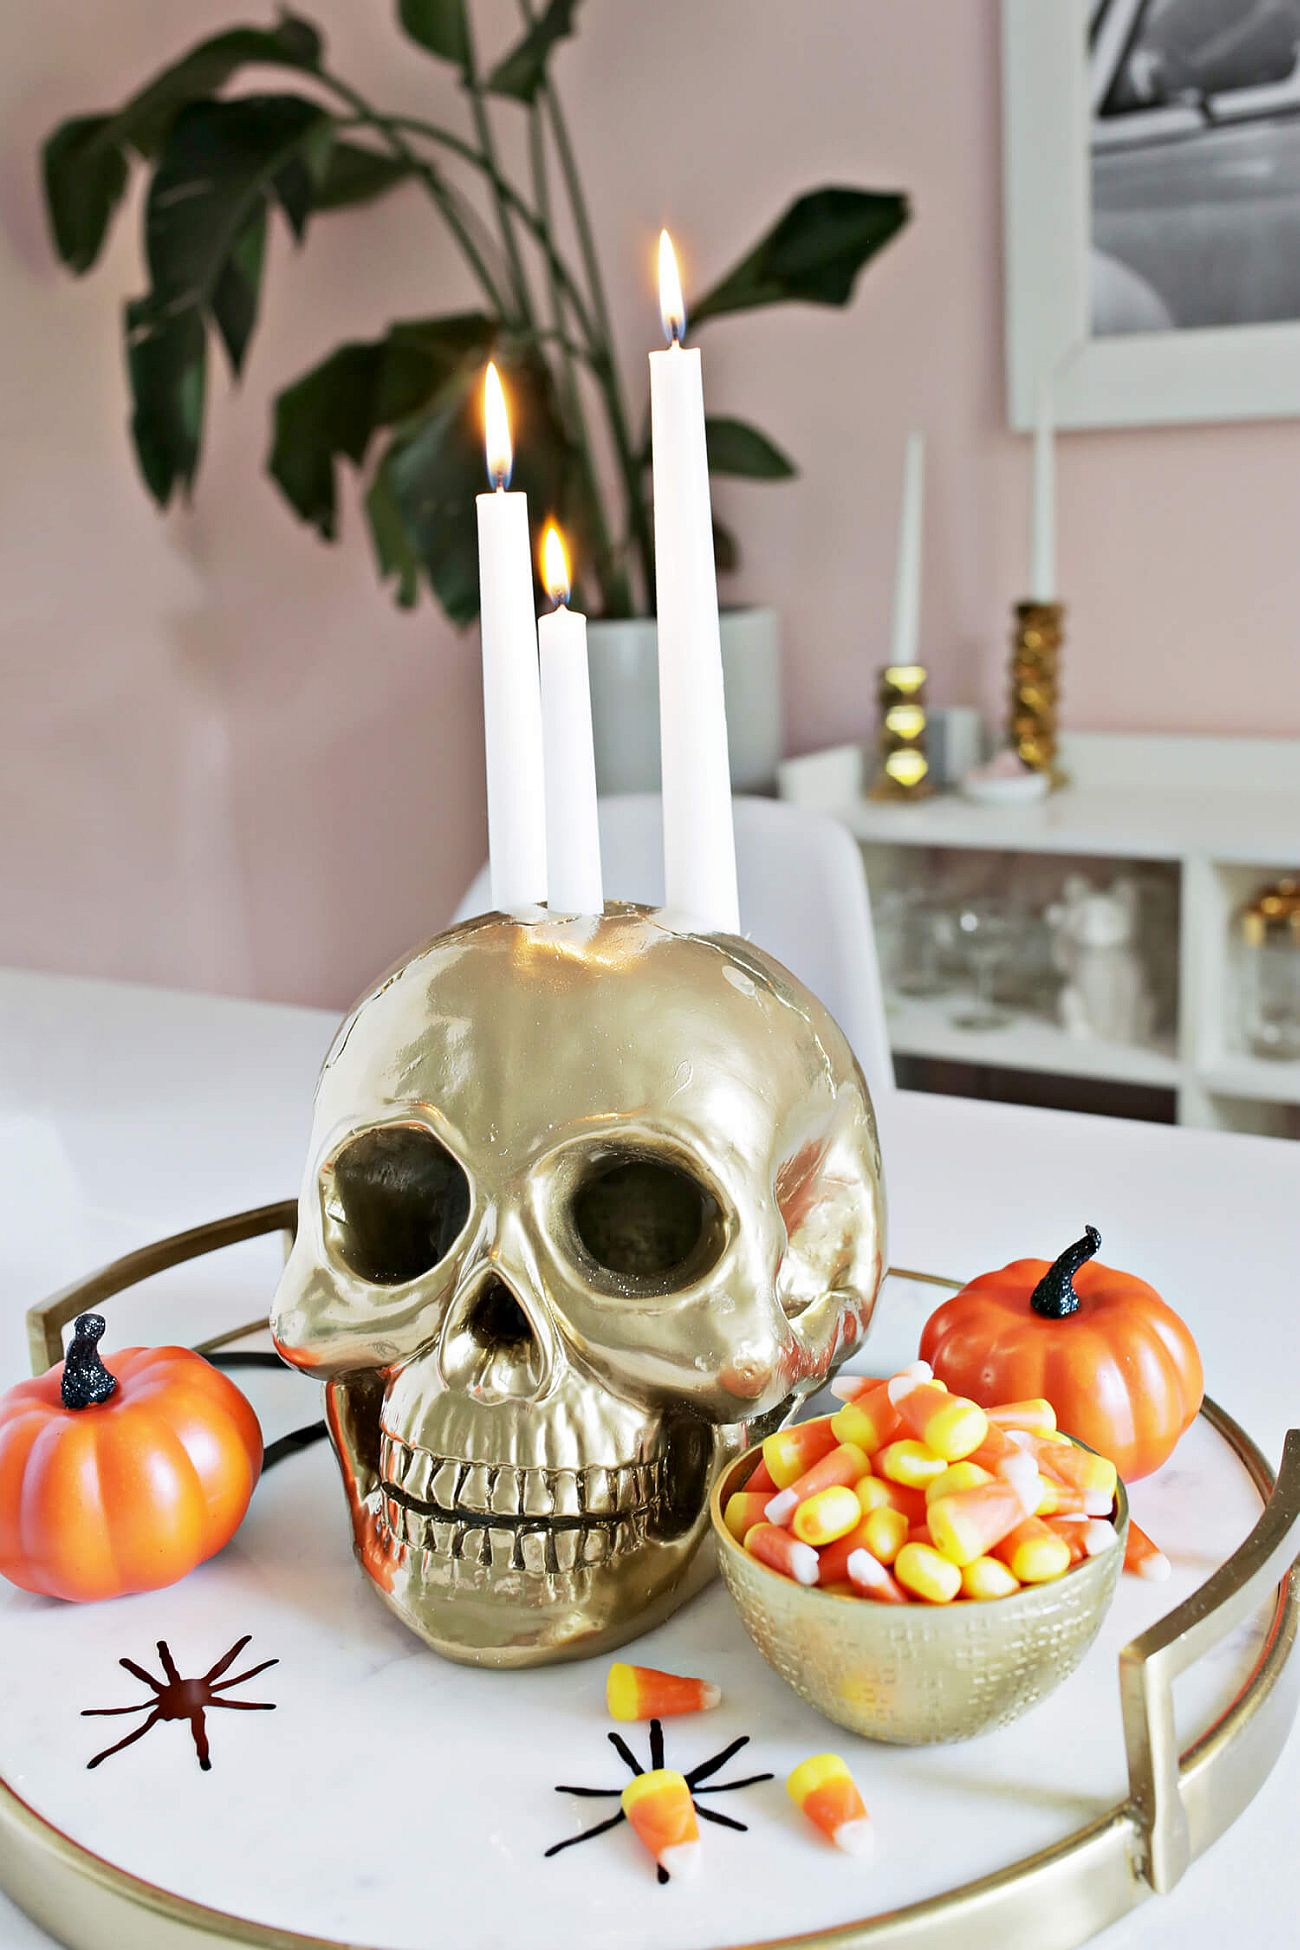 Flashy Skull Candle Holder DIY with Golden Dazzle